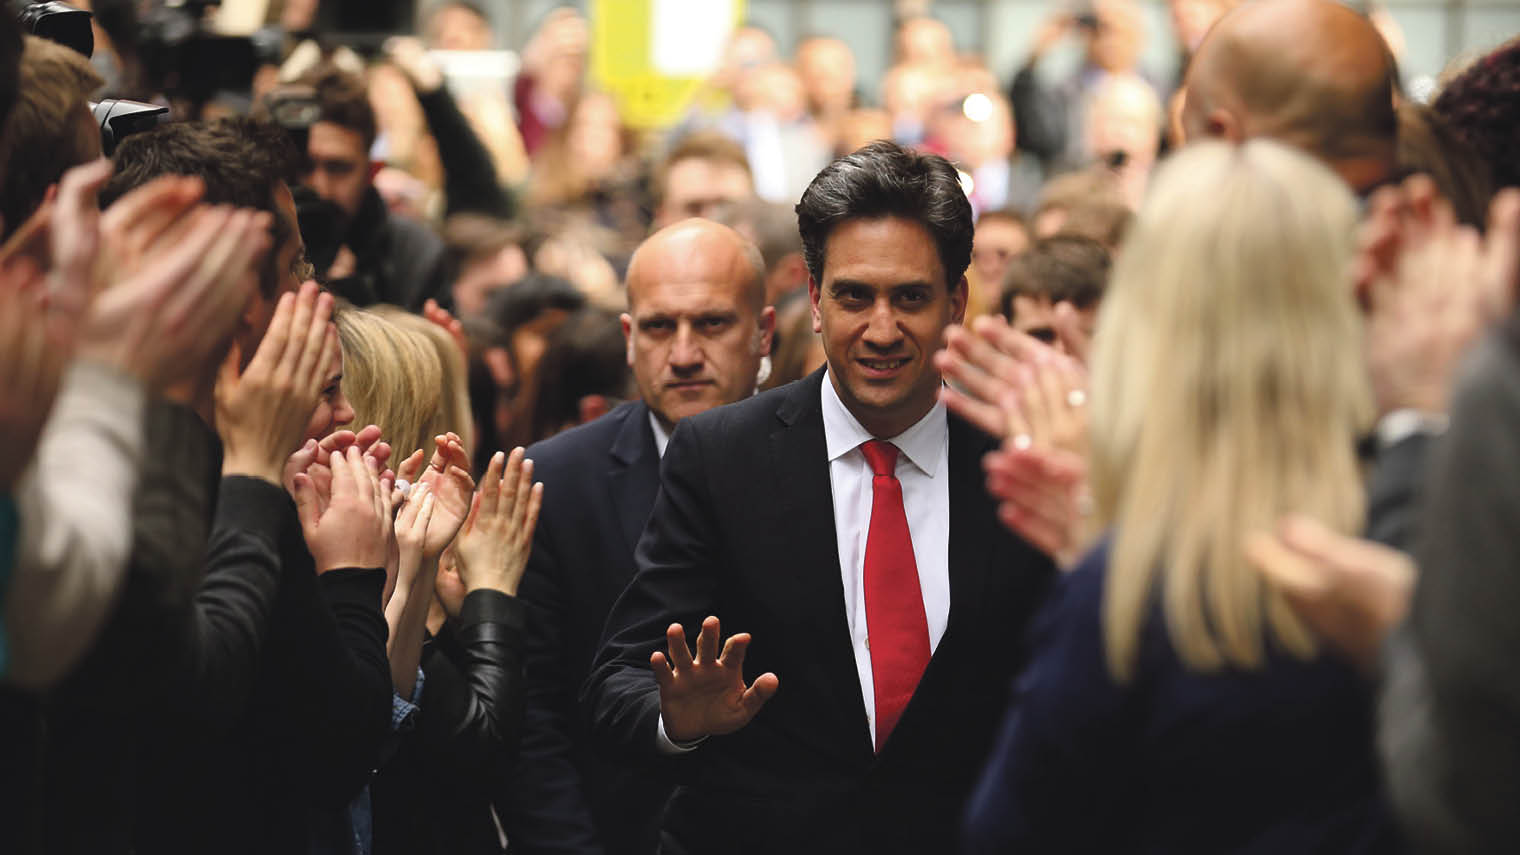 Many polls ahead of the 2015 general election predicted a Labour win or hung parliament; the Conservatives won with 38 per cent of the votes to to Ed Miliband and Labour's 31 per cent